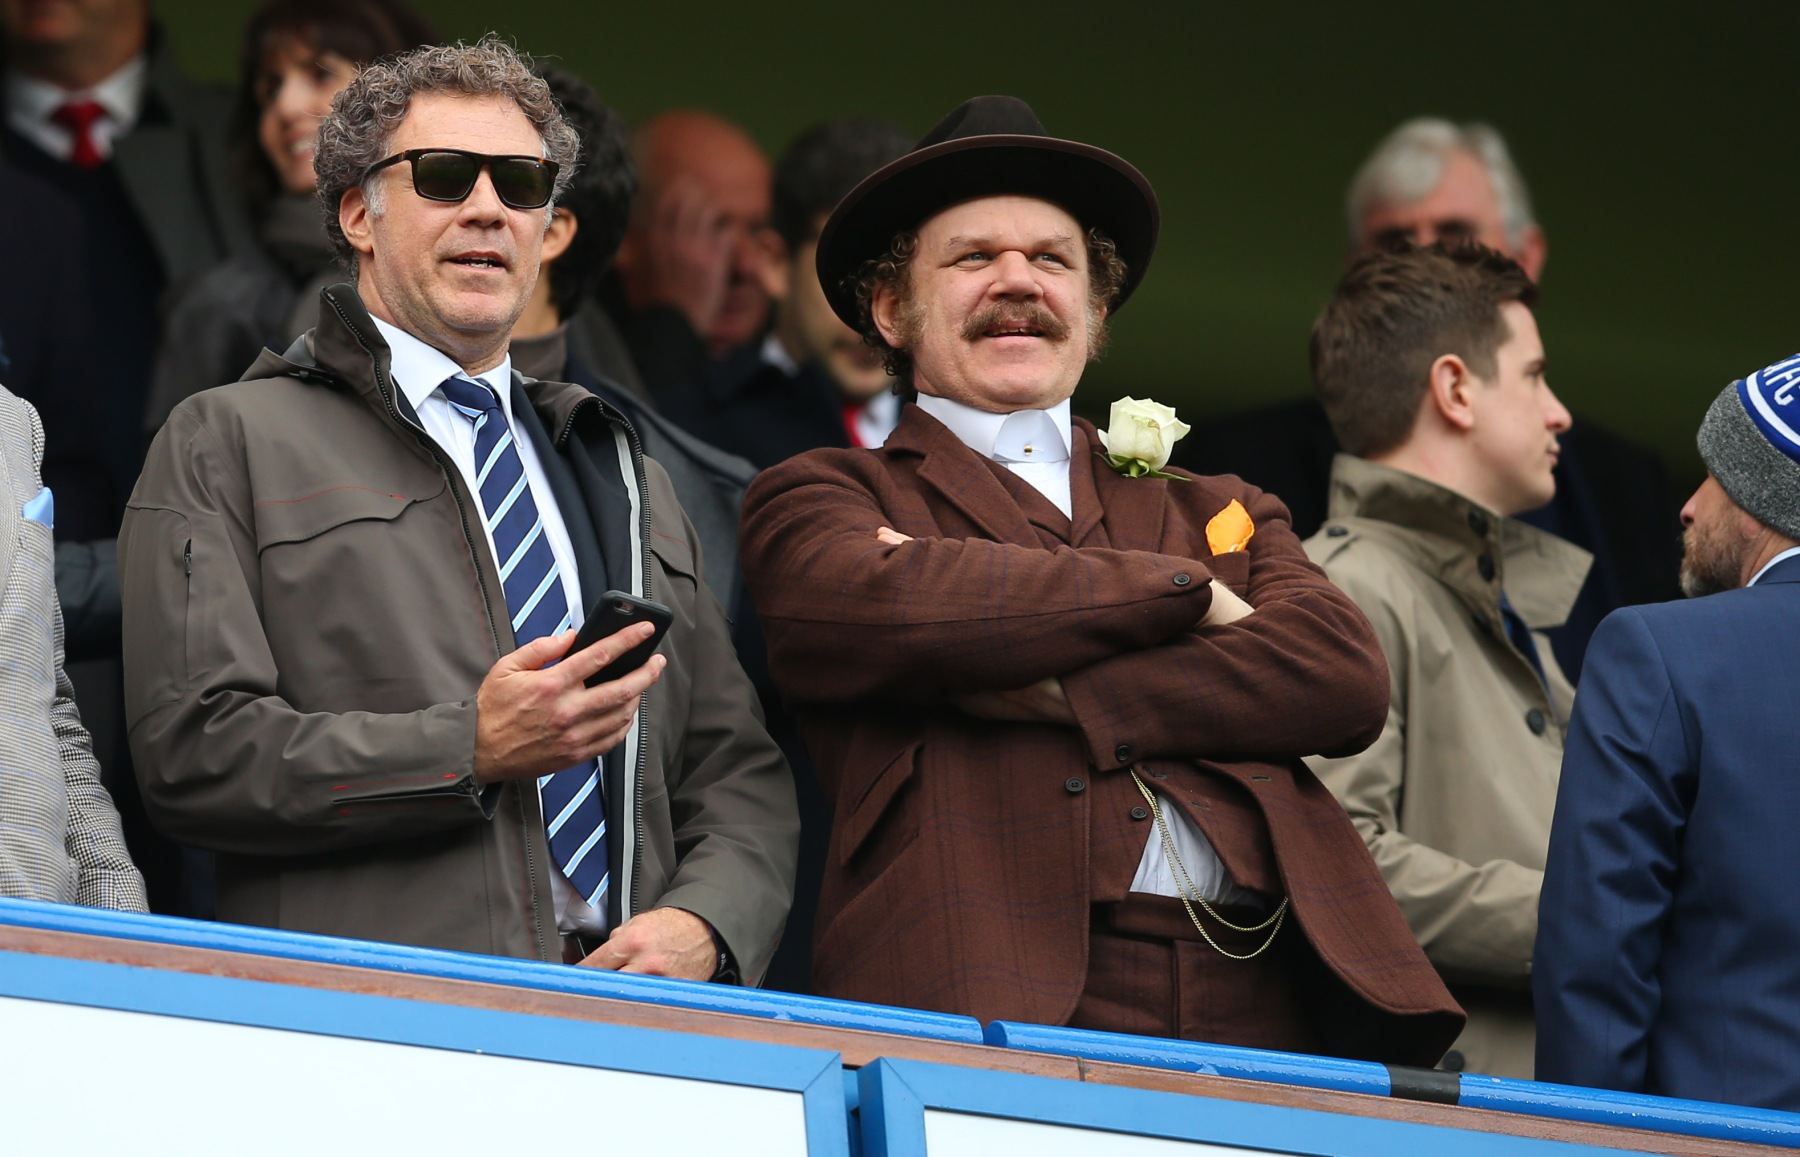 "Will Ferrell and John C Reilly during the Premier League match between Chelsea and Arsenal at Stamford Bridge on February 4, 2017 in London, England. The trailer for Ferrell and Reilly's next movie ""Holmes and Watson"" was recently released. (Photo by Catherine Ivill - AMA/Getty Images)"